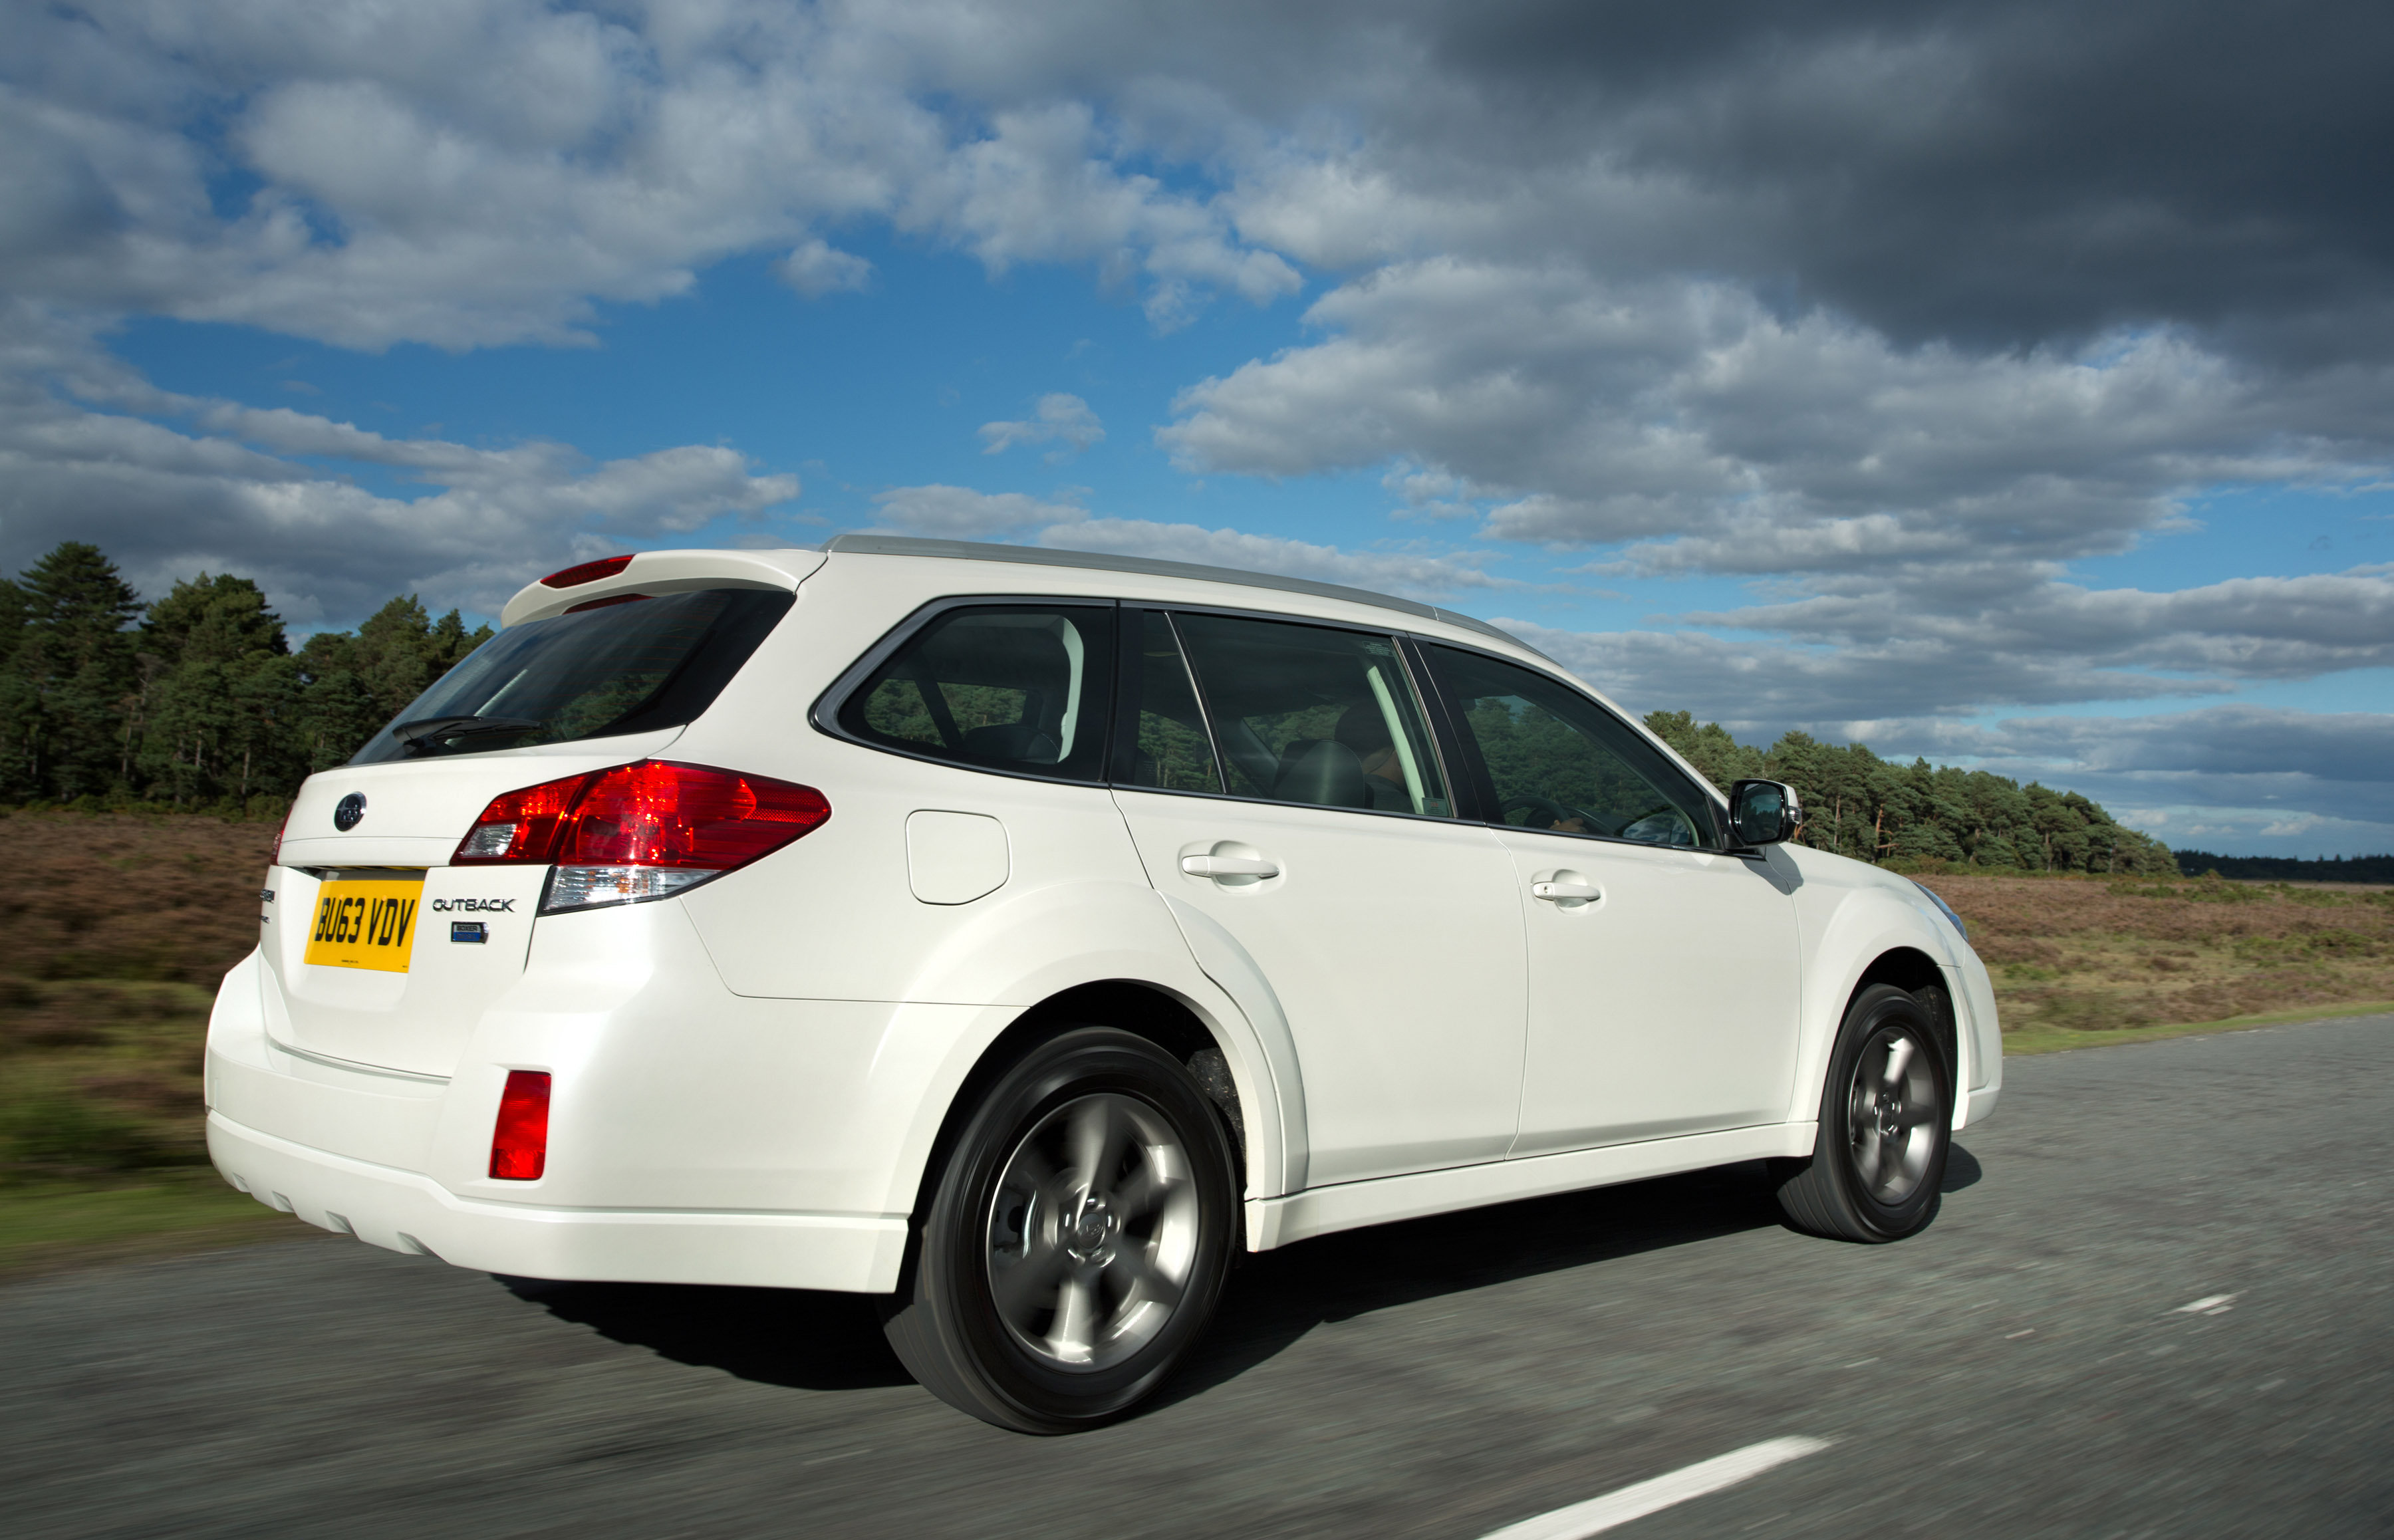 New 2014 Subaru Outback News Release, Reviews and Models on